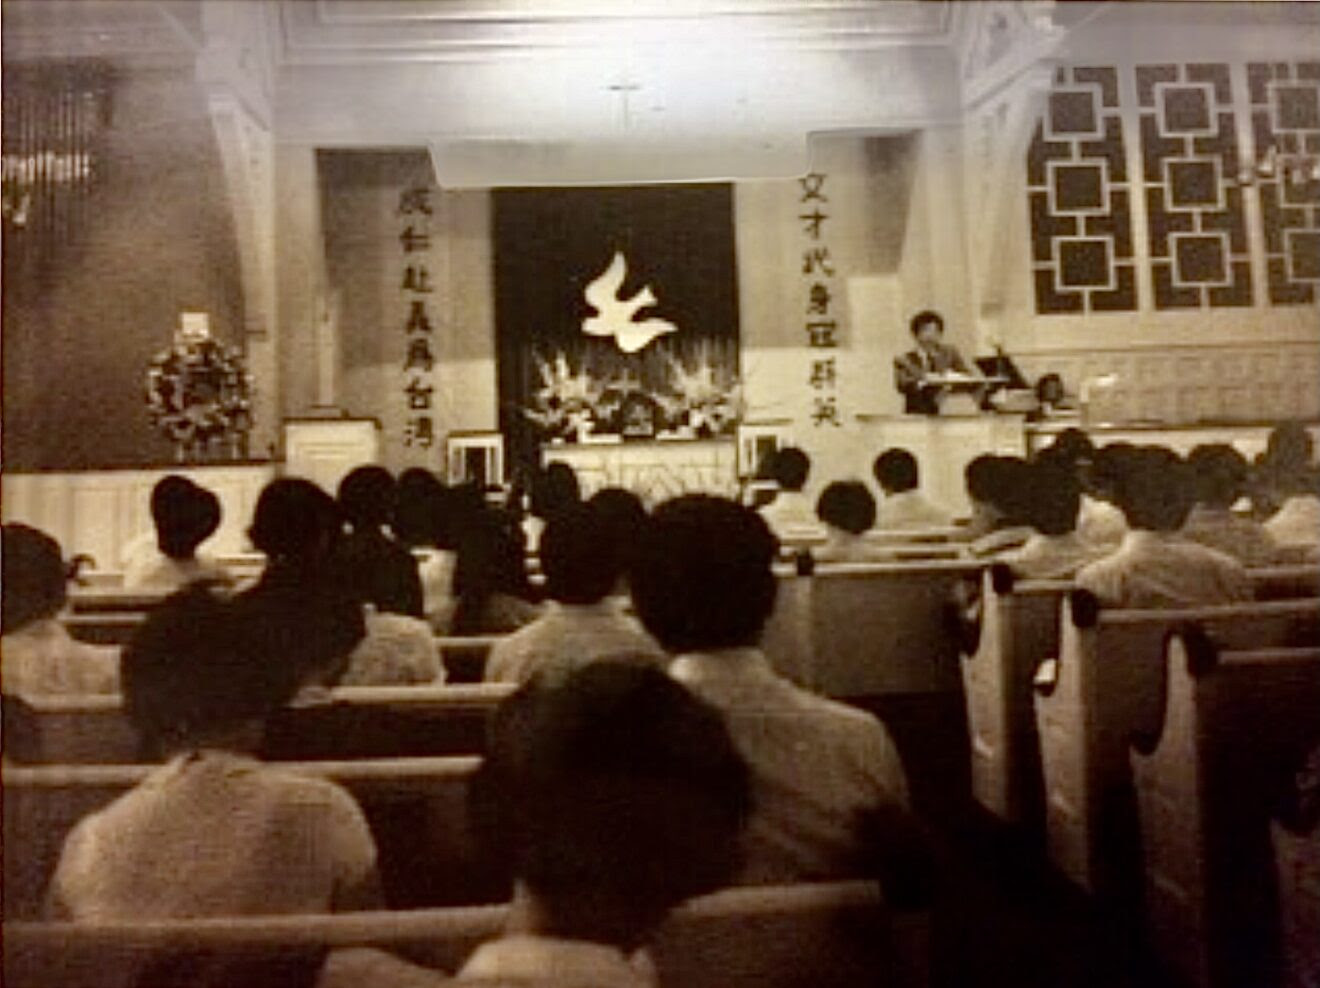 321. 由陳文成紀念基金會的創立談起 / Establishment of the Chen Wen-Chen Memorial Foundation/ Yung Hwa Hsu